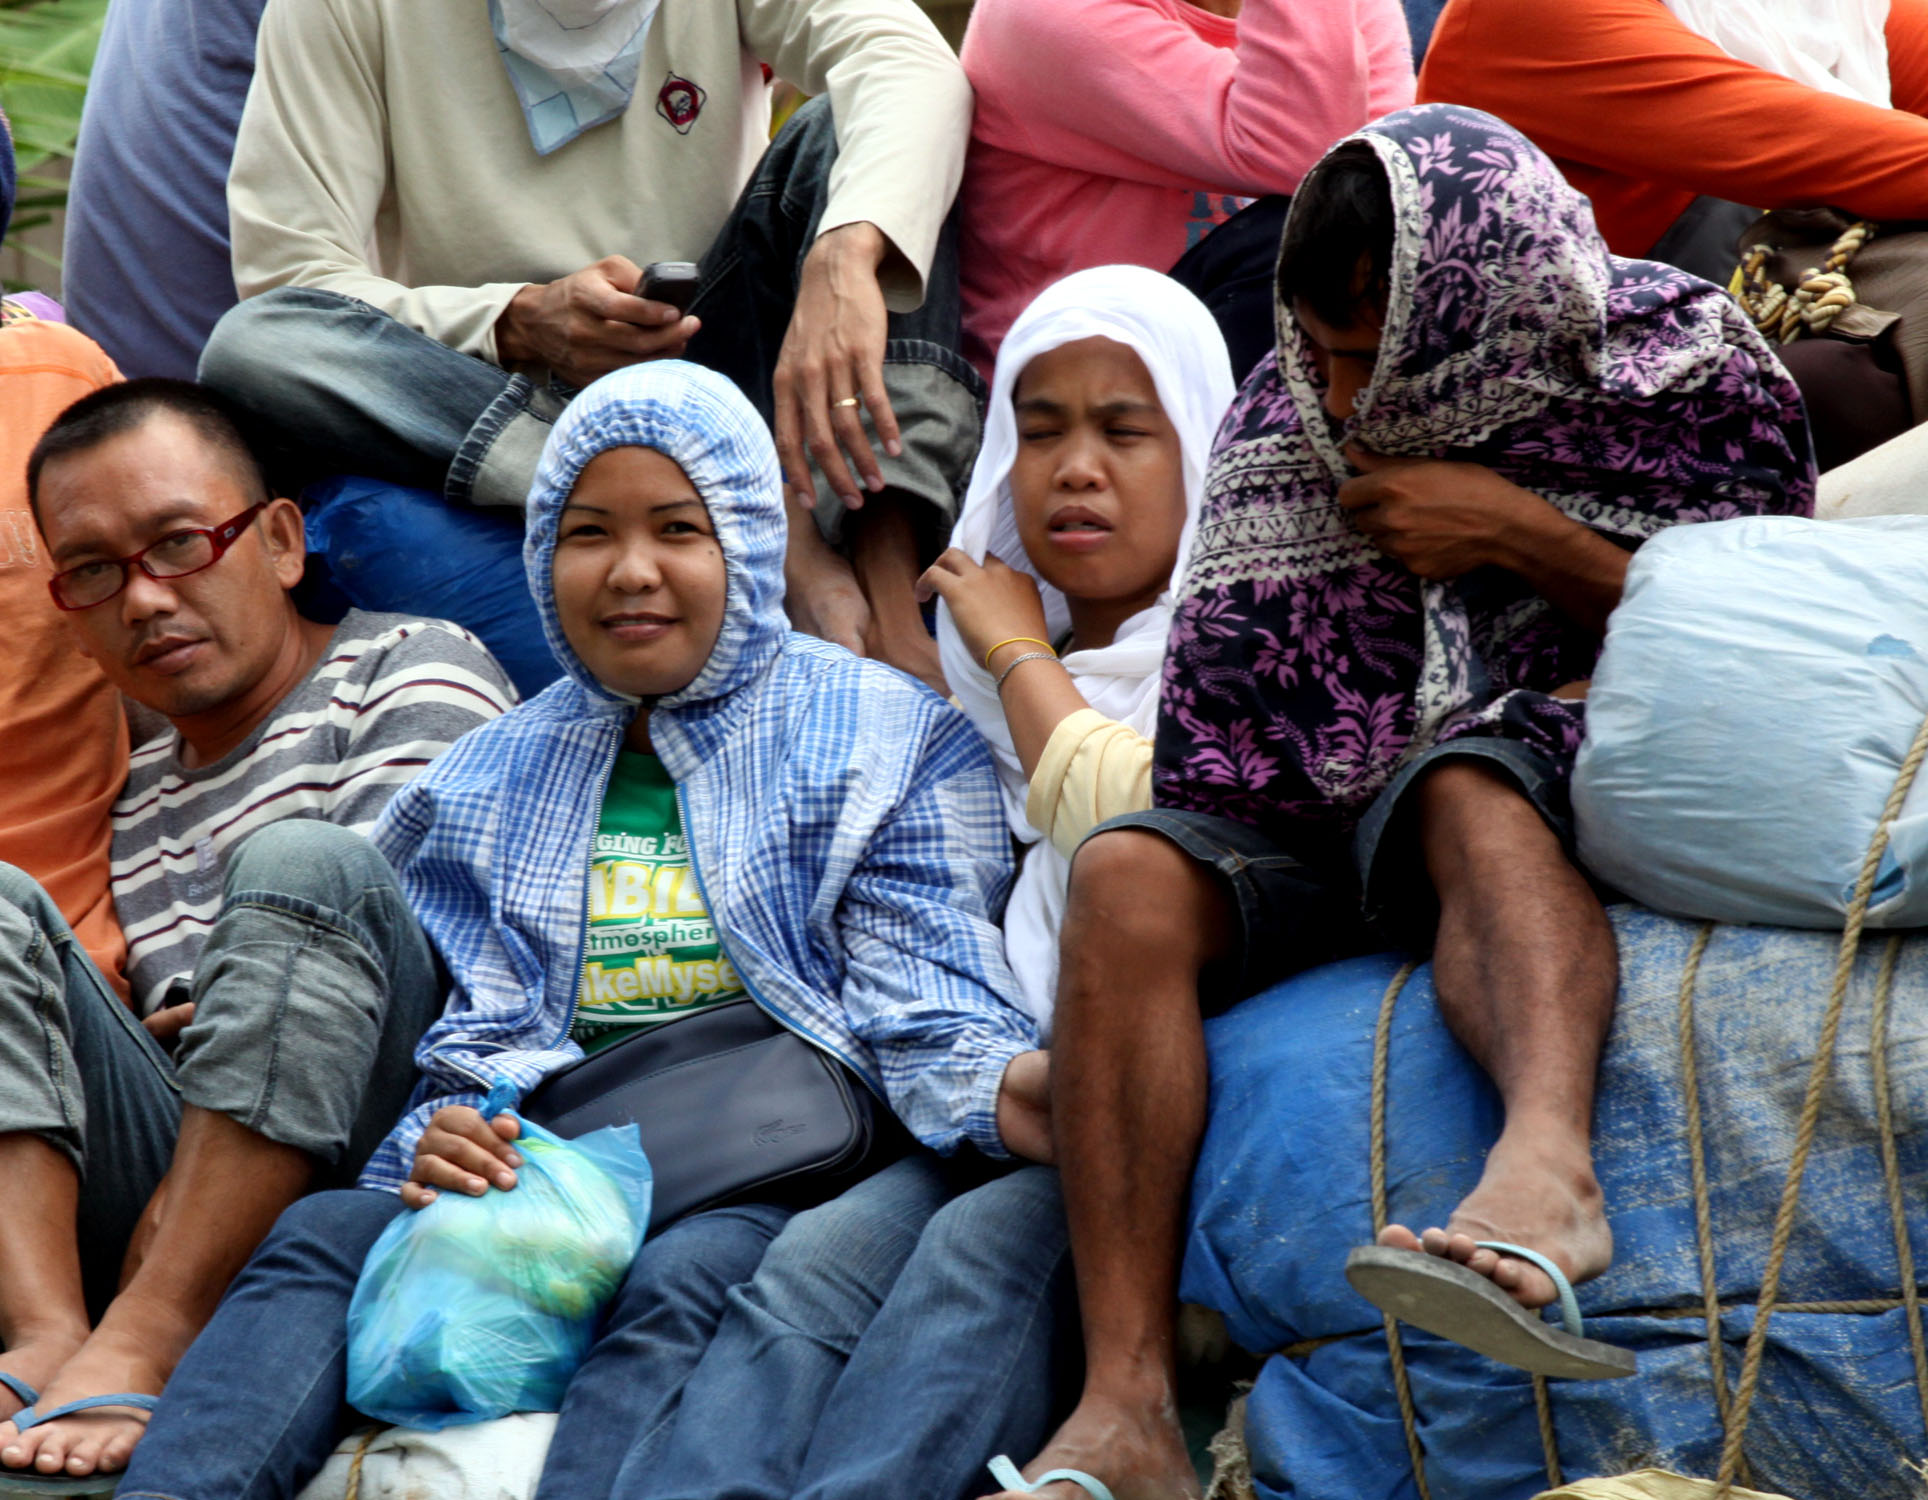 Villagers aboard a truck as they pass through tight security at a checkpoint on the southern island of Mindanao